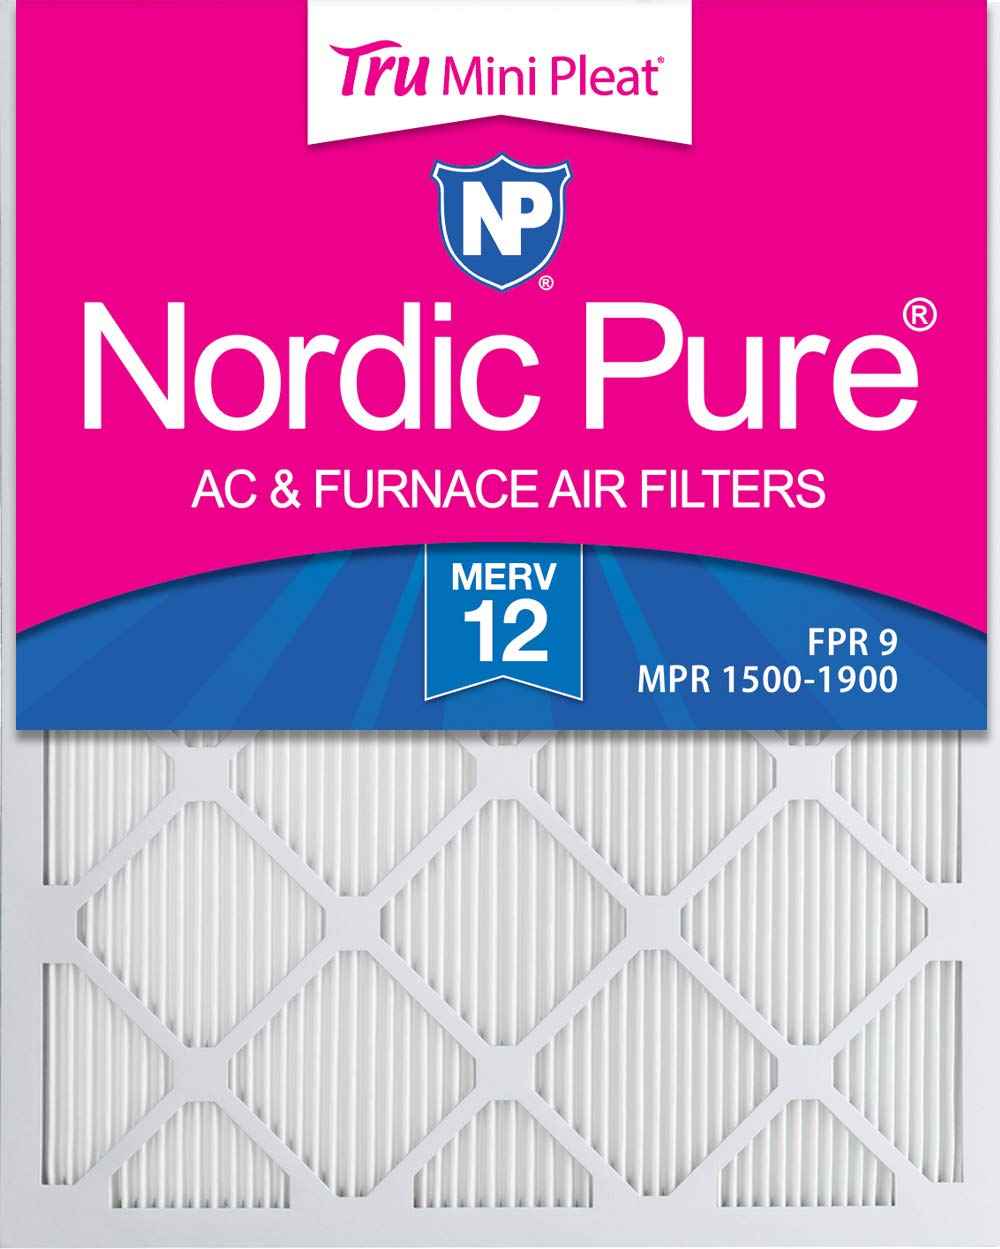 Nordic Pure 14x25x1 MERV 12 Tru Mini Pleat AC Furnace Air Filters 4 Pack